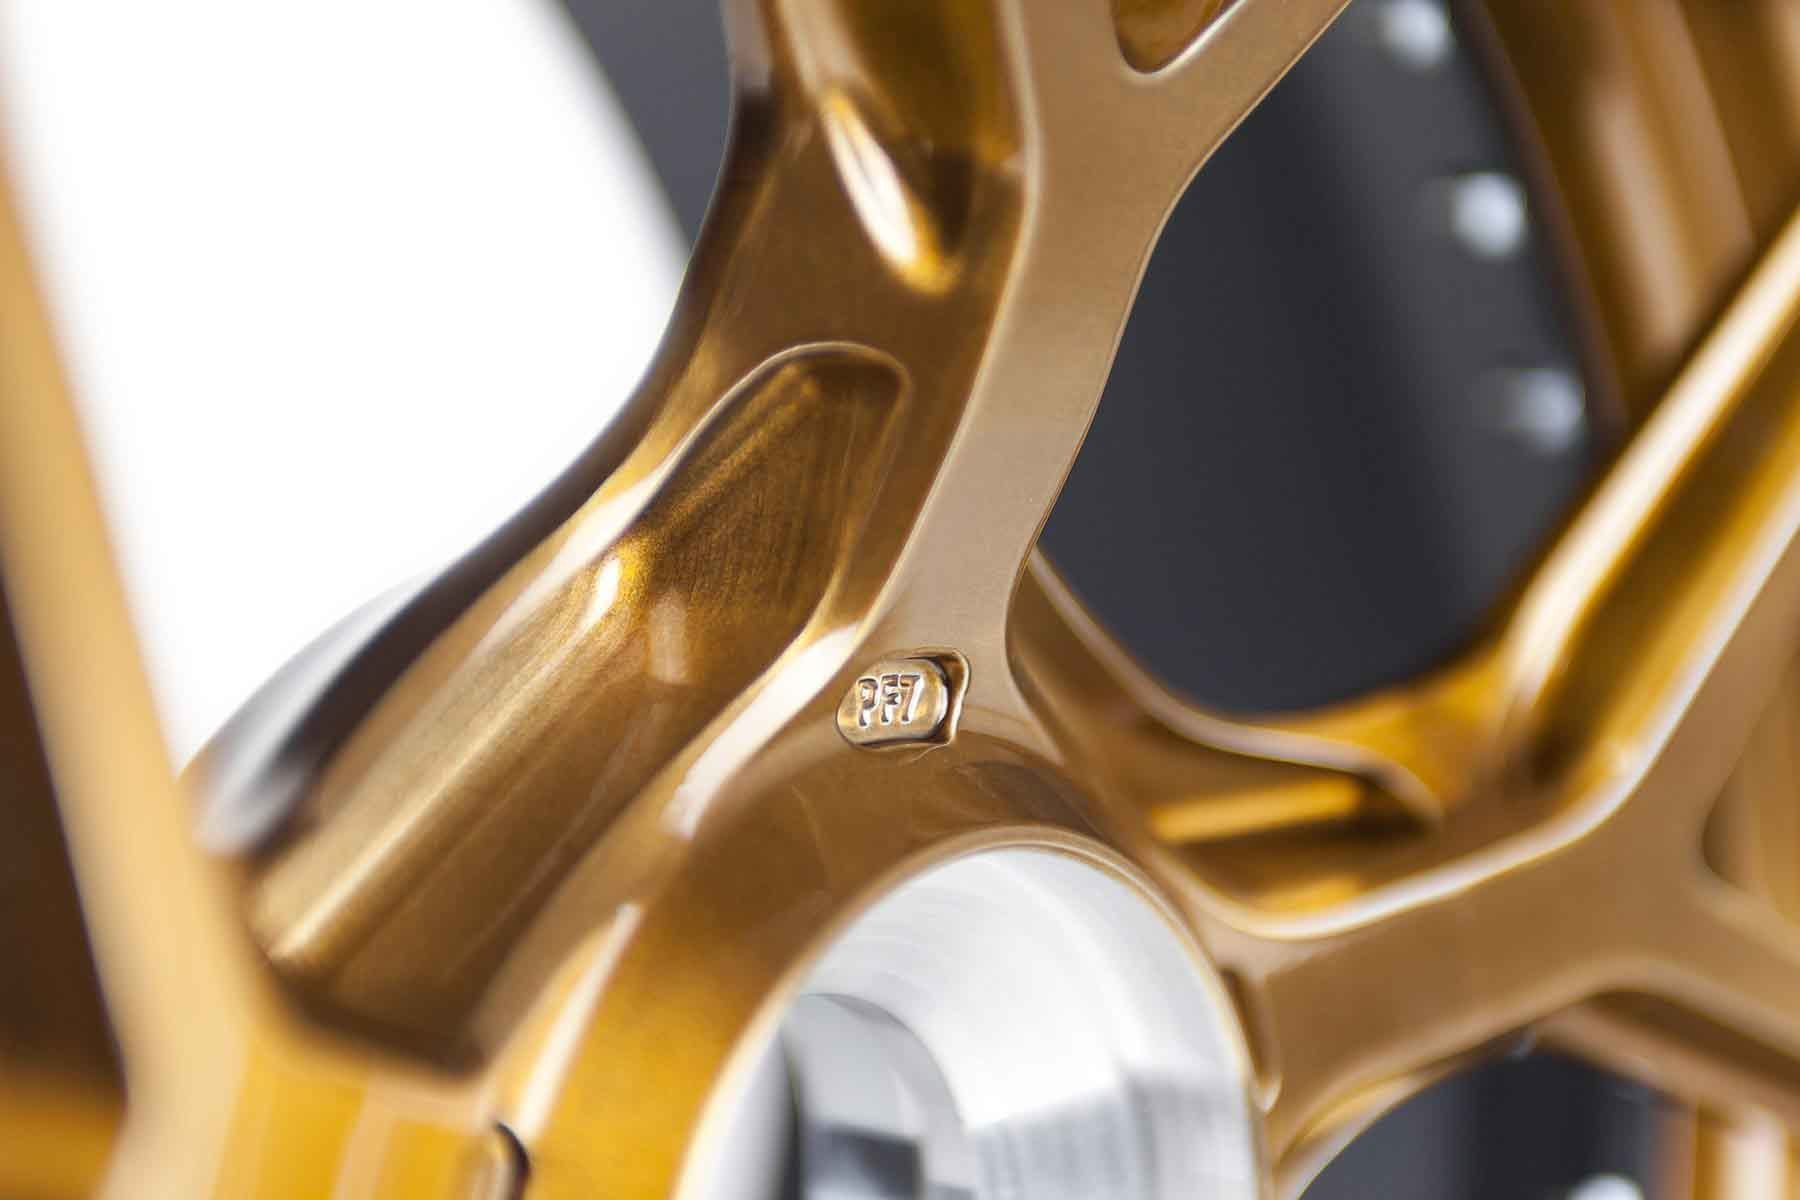 images-products-1-1814-232974102-brixton-forged-pf7-porsche-991-gt3-brushed-olympic-bronze-gloss-center-lock-04-1800x1200.jpg